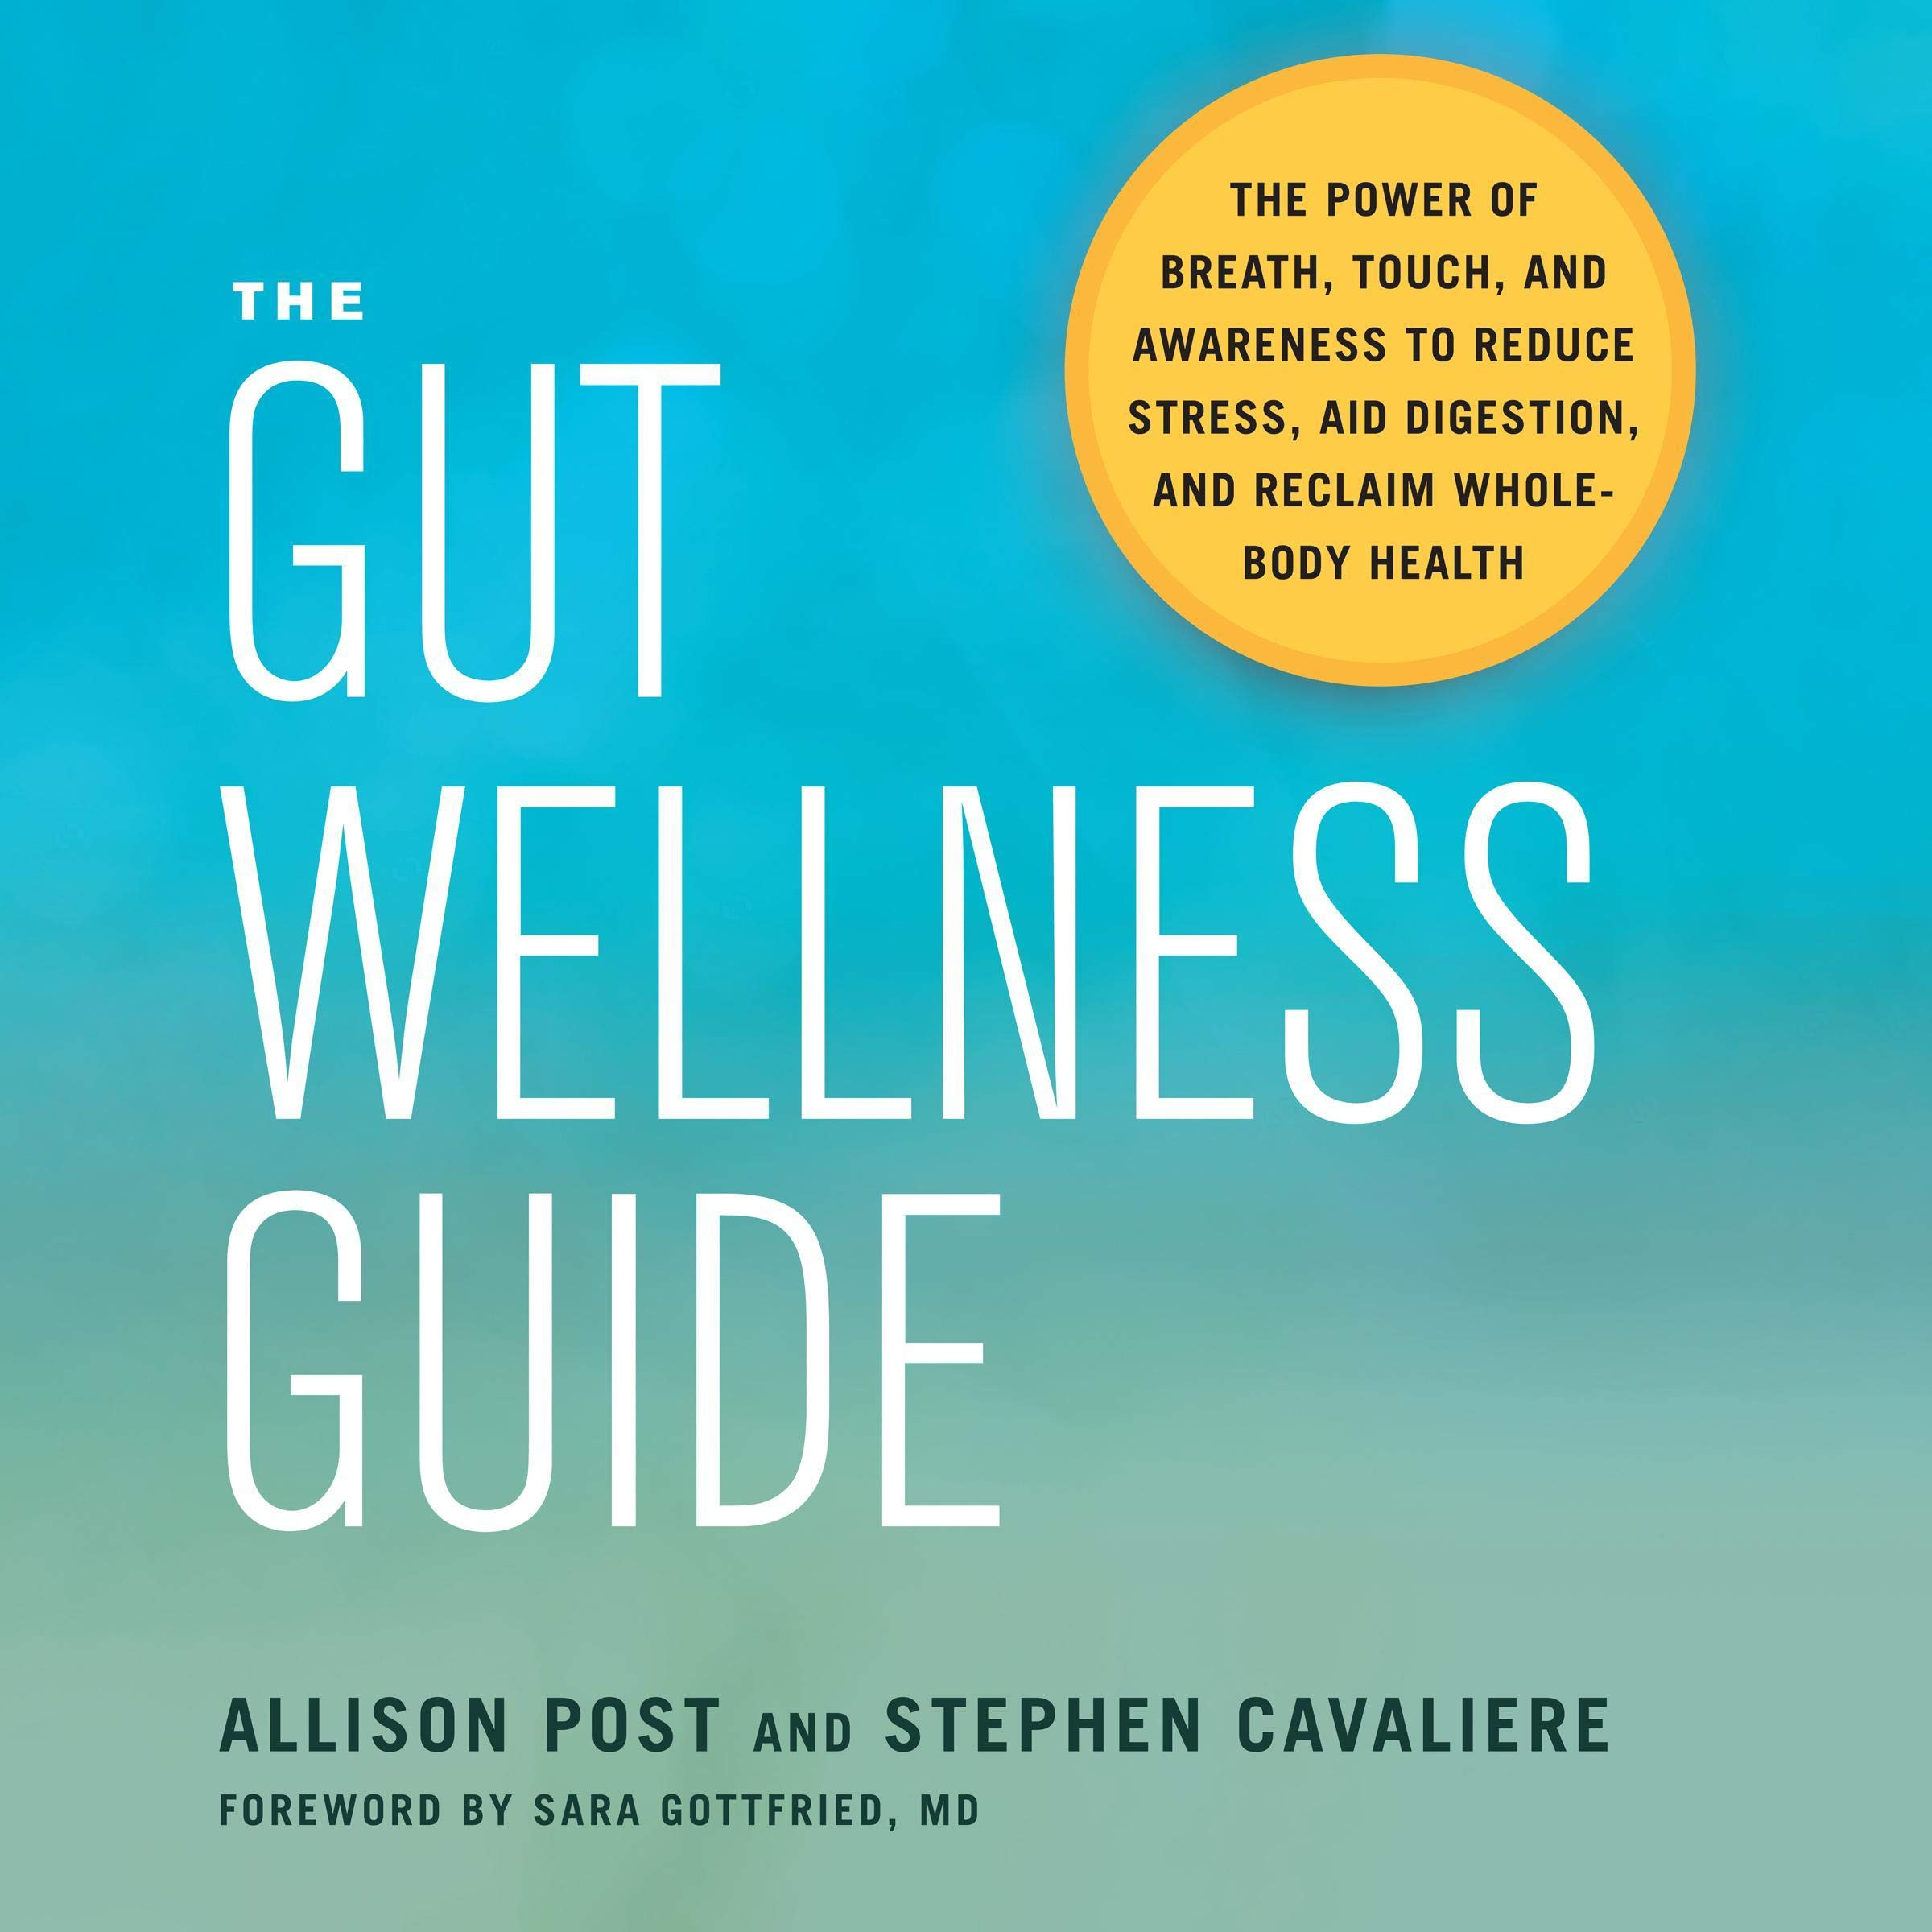 The Gut Wellness Guide  The Power Of Breath Touch And Awareness To Reduce Stress Aid Digestion And Reclaim Whole Body Health